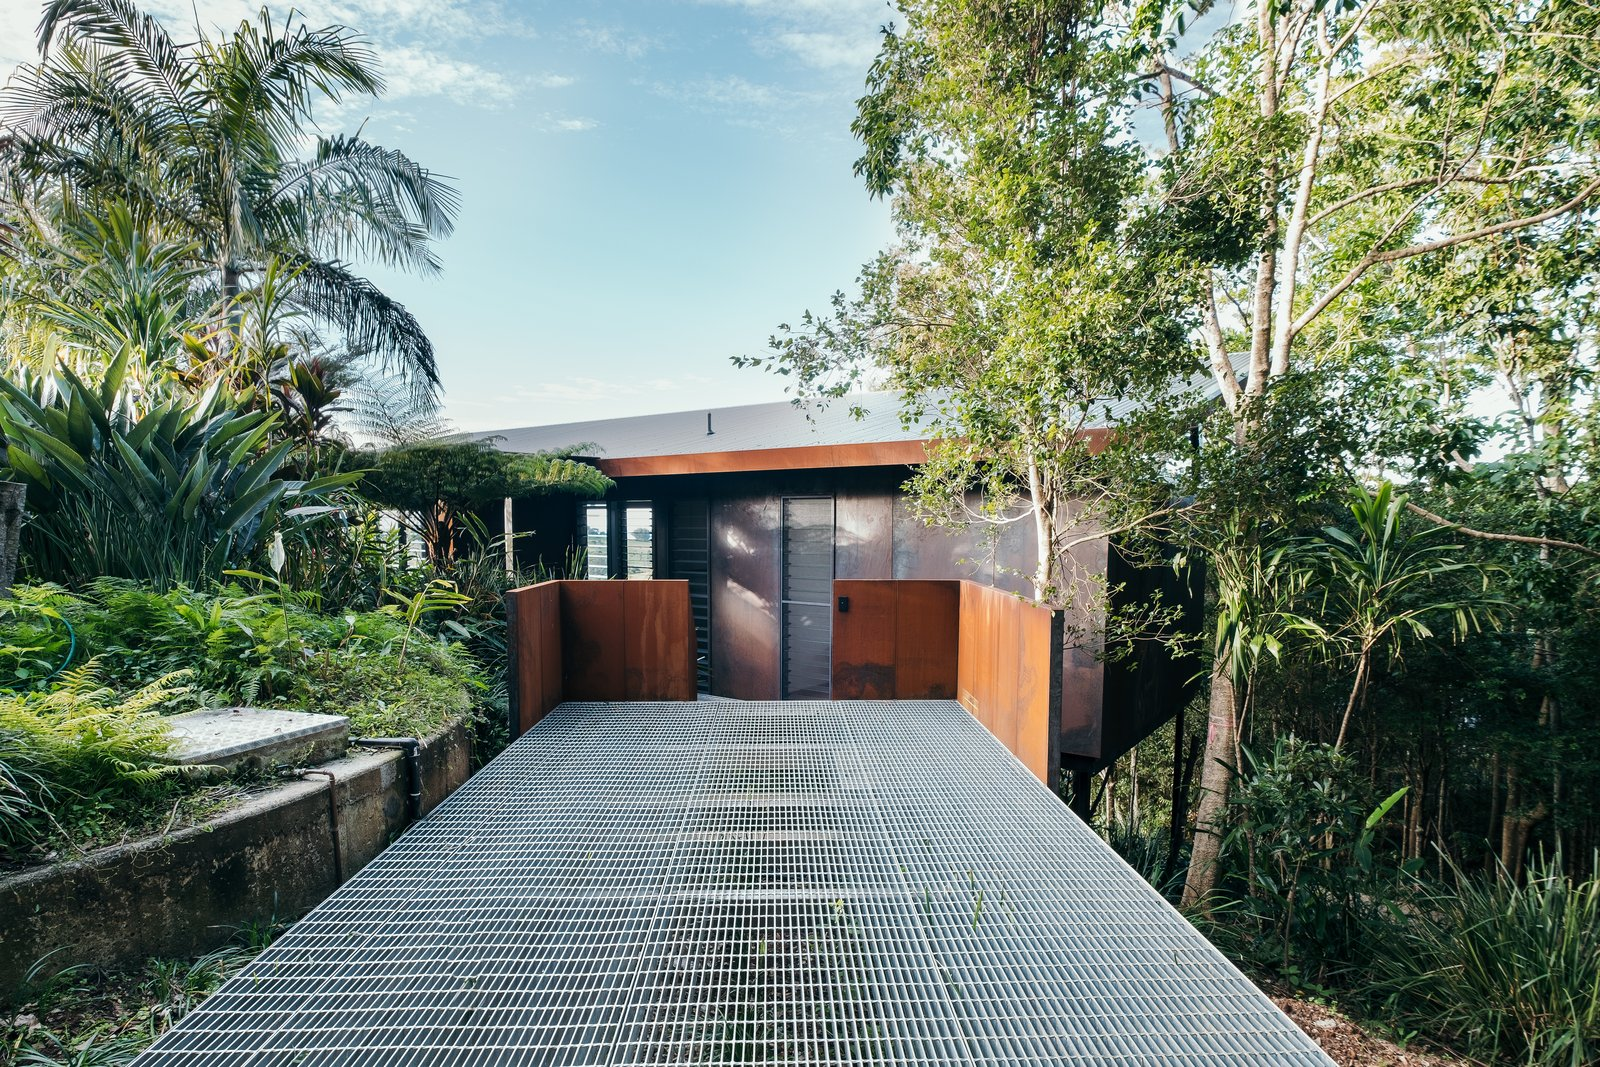 Outdoor, Retaining, Side Yard, Metal, Slope, Small, Stone, Wood, and Trees A ramp leads to the entrance door.  Outdoor Side Yard Slope Photos from A Tiny Guesthouse Hides in a Lush Australian Rainforest